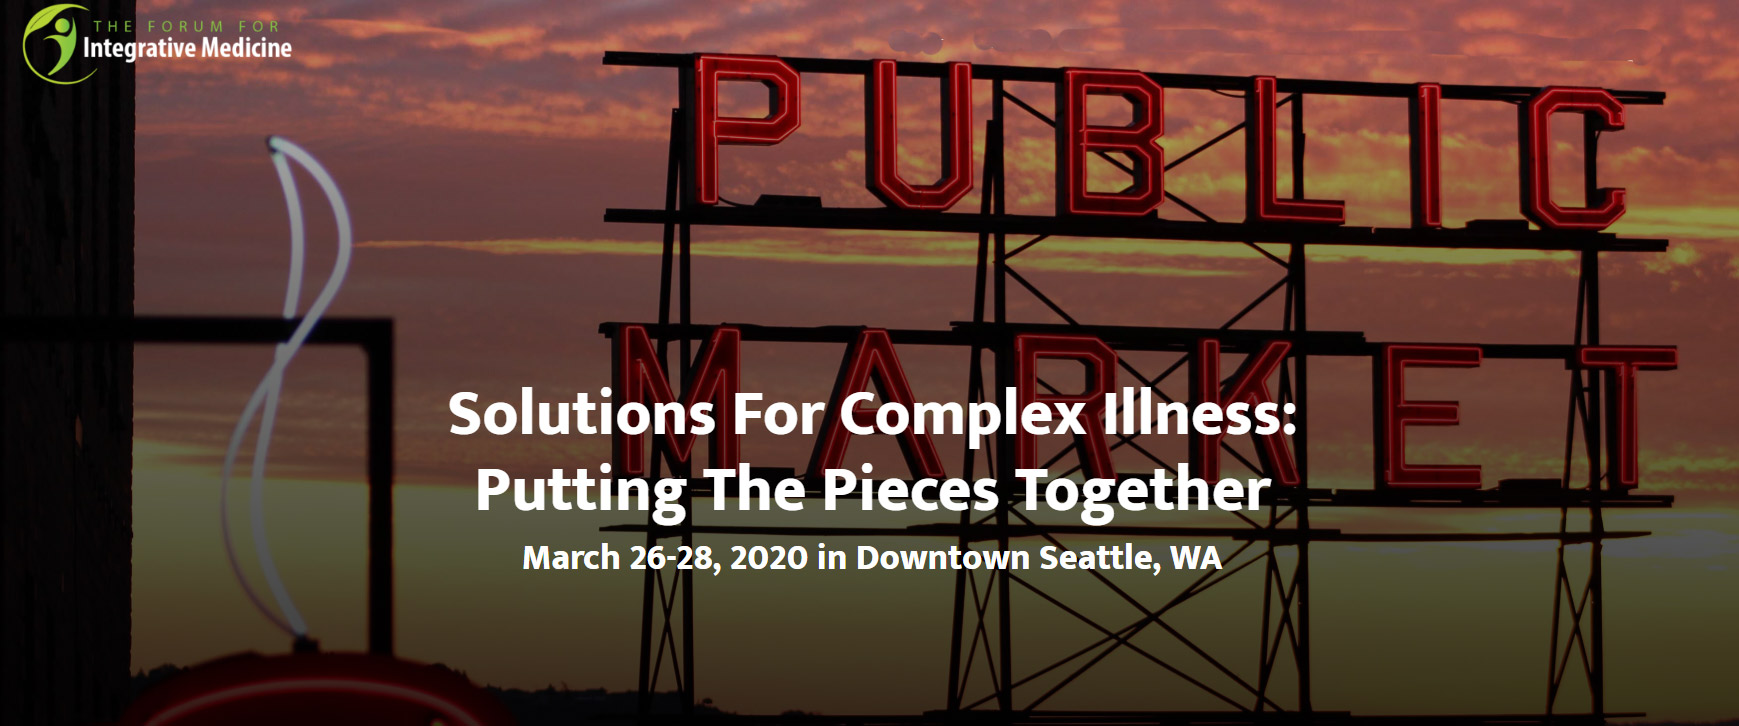 TFIM: Solutions for Complex Illness: Putting the Pieces Together